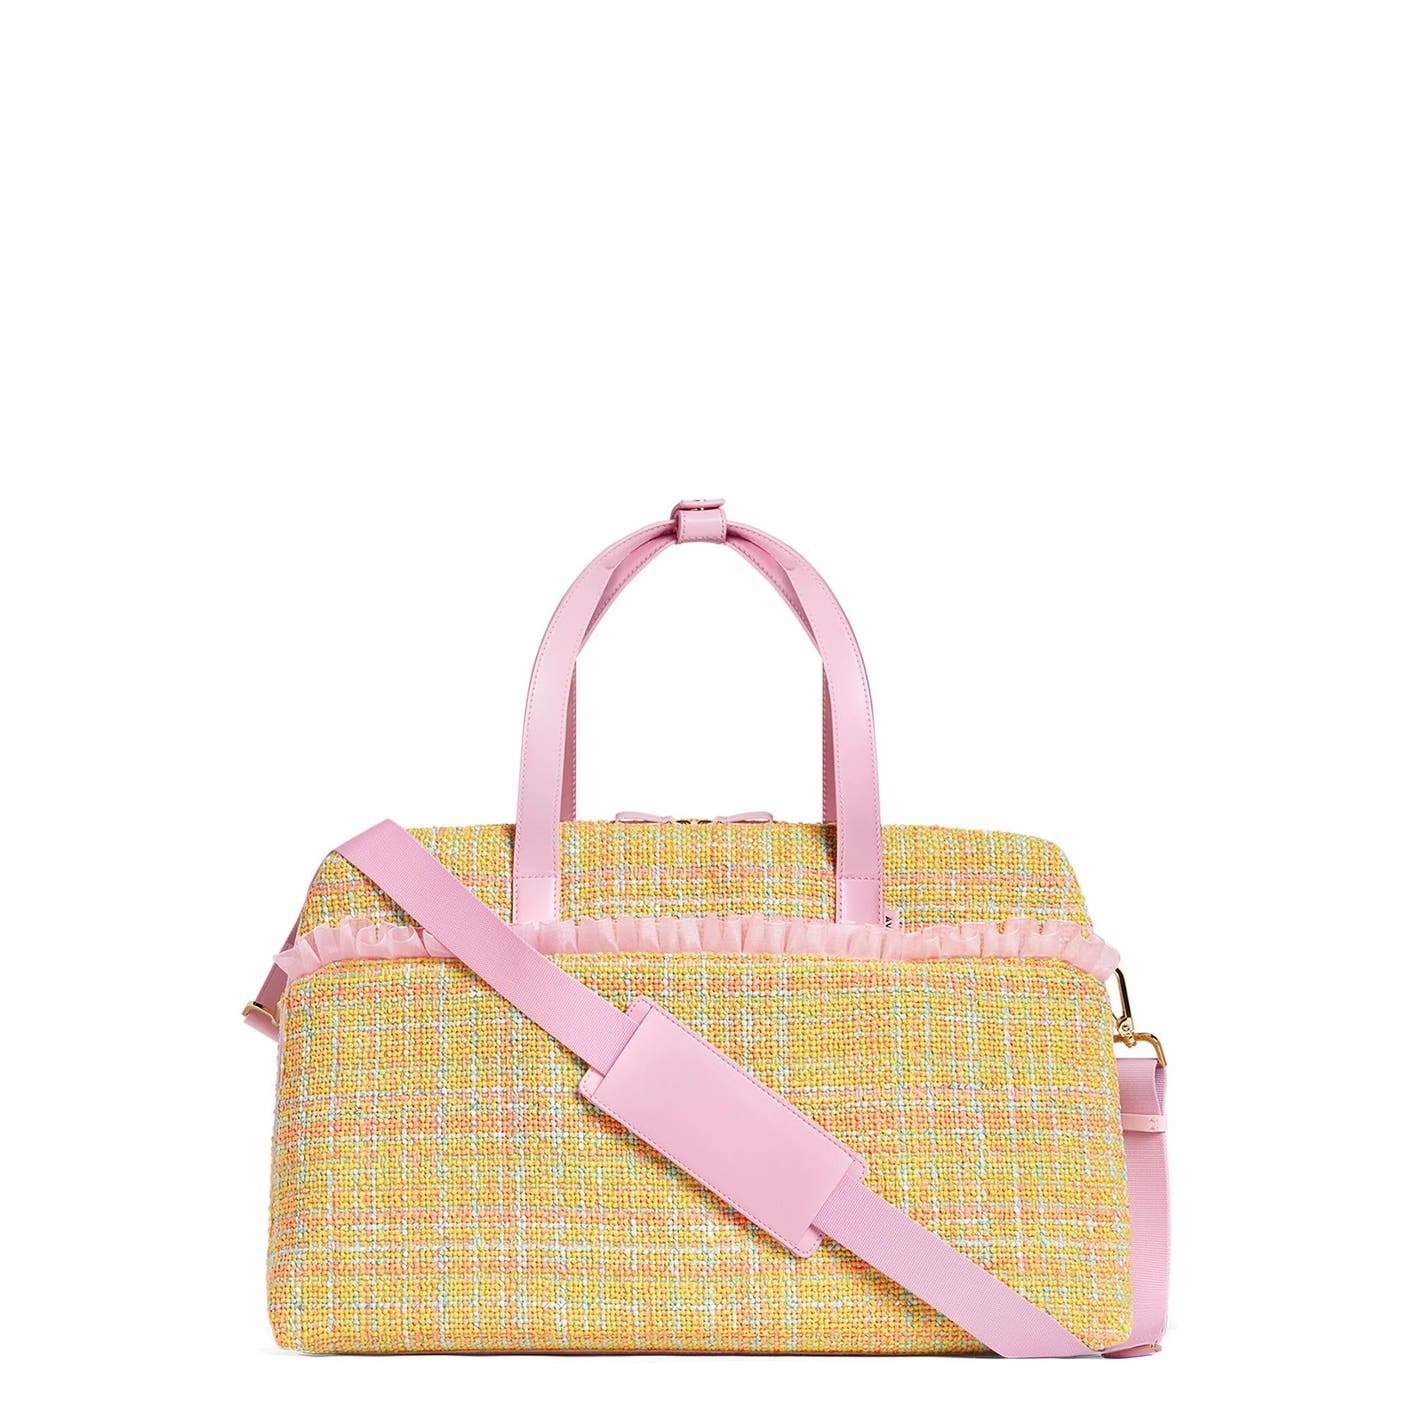 The Large Everywhere Bag by Tia Adeola